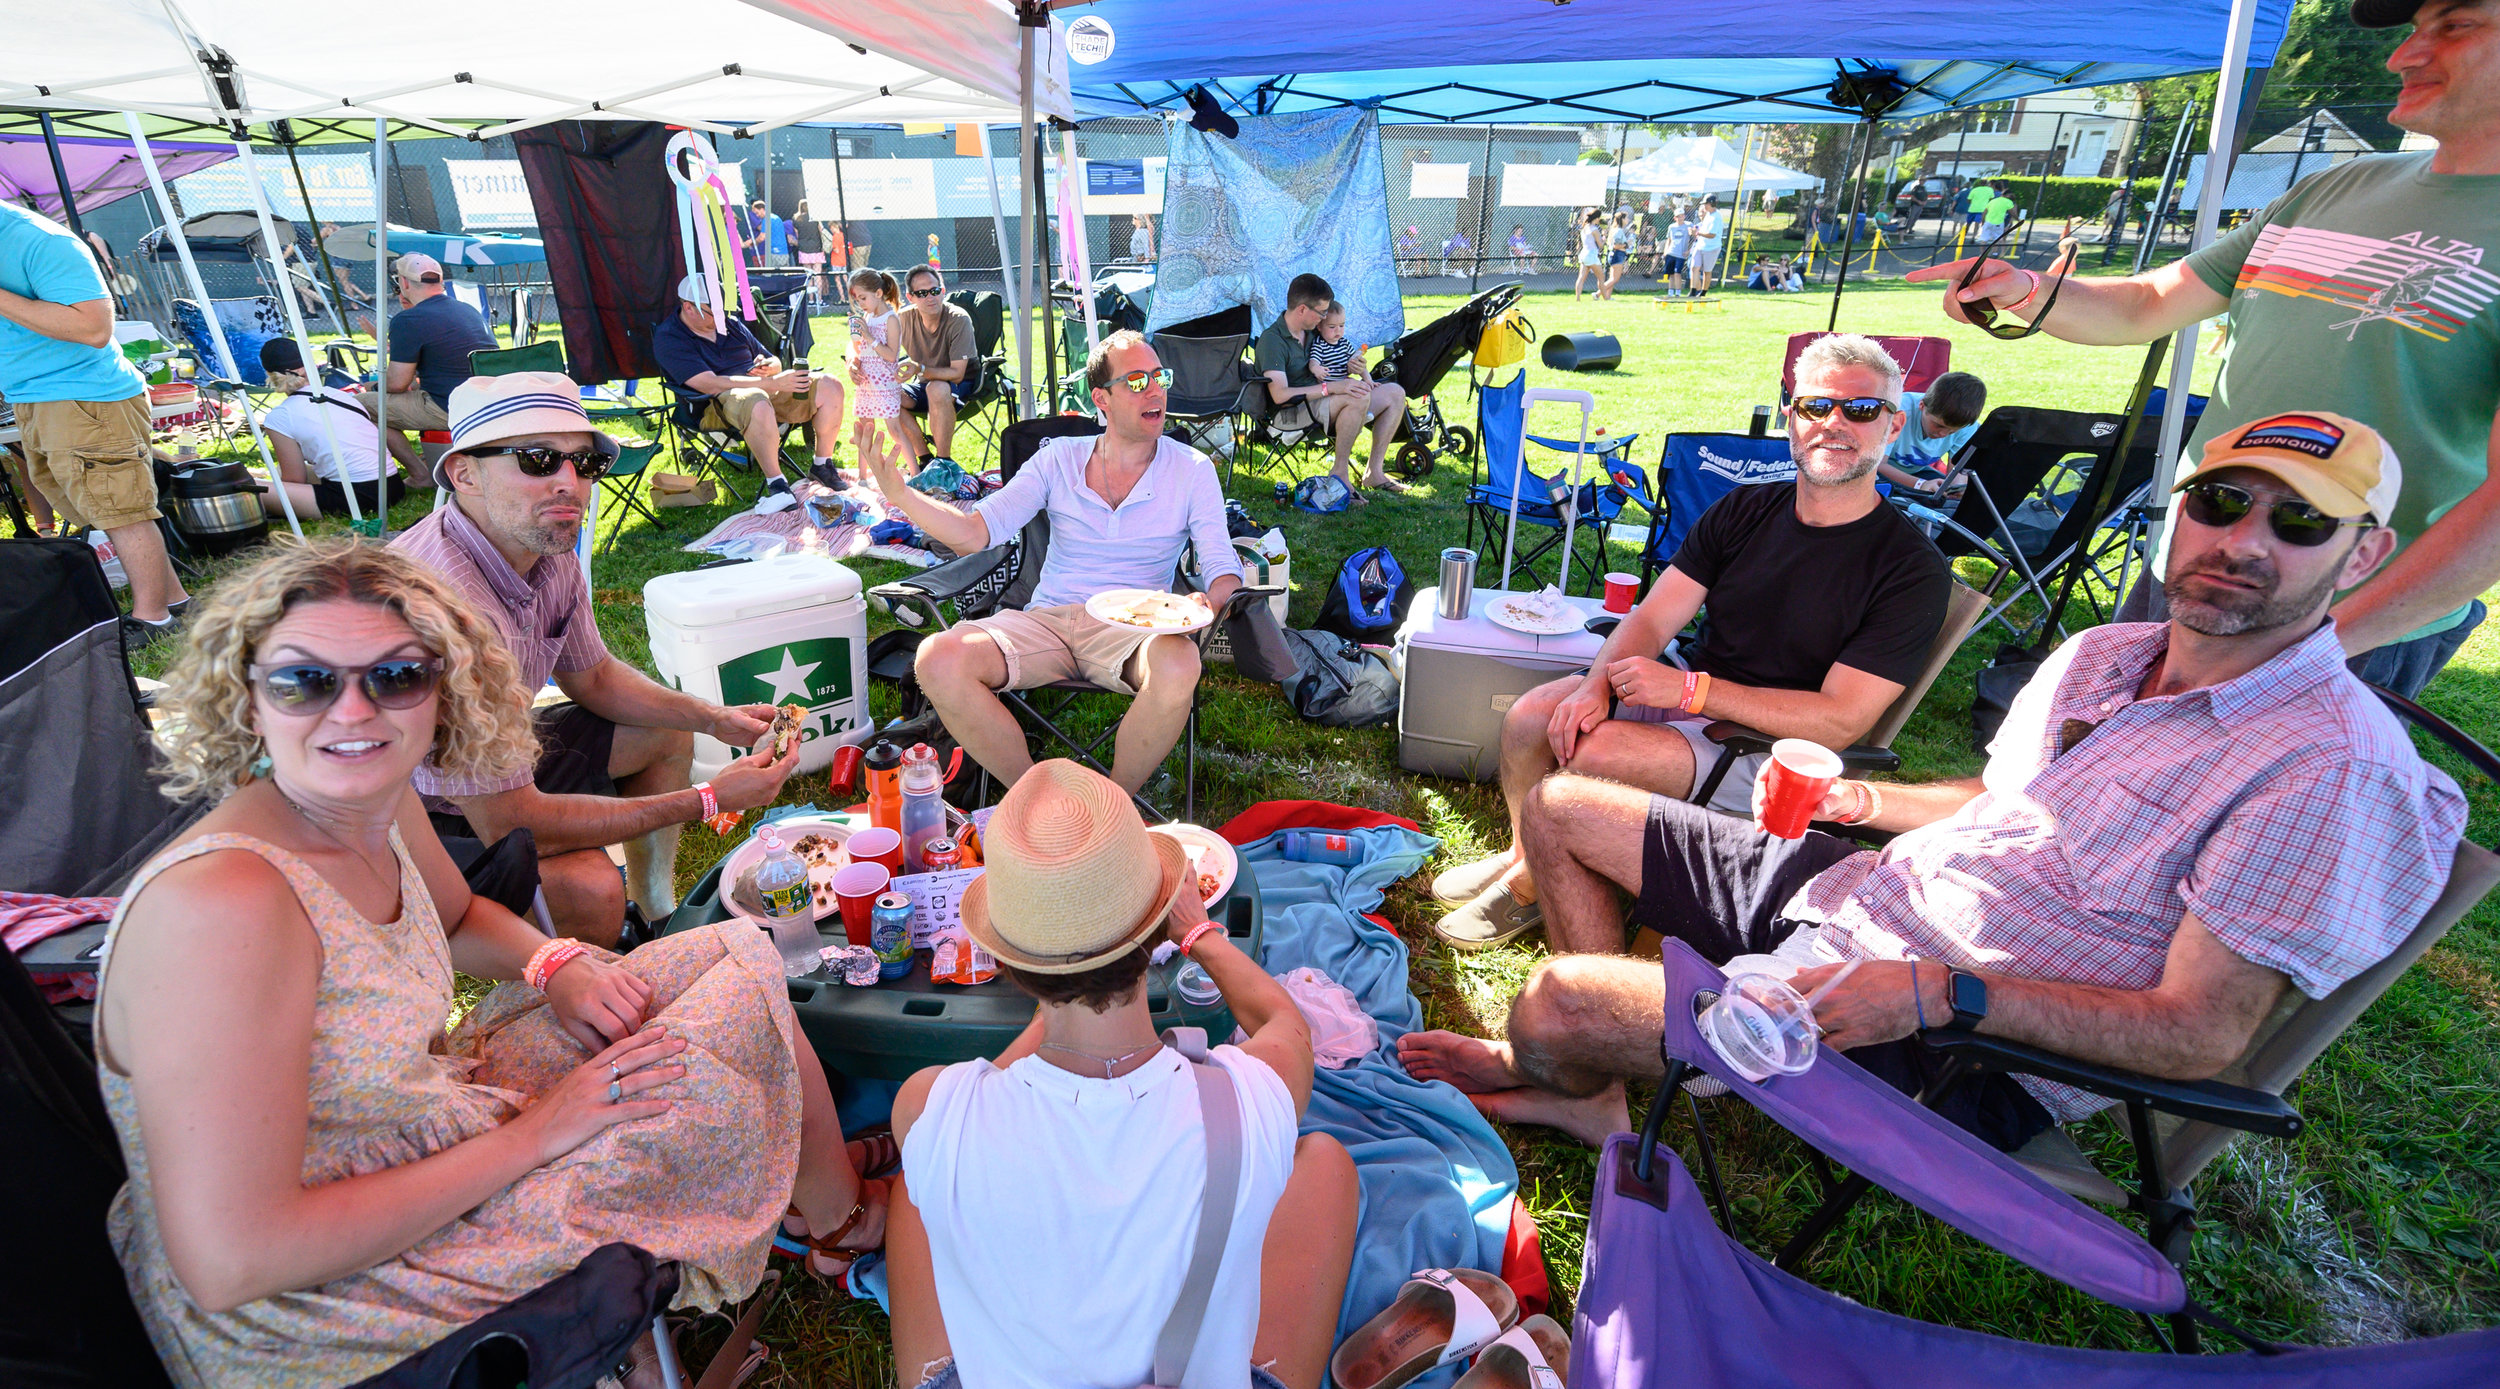 The party within the party at Tent City © 2019 Lynda Shenkman